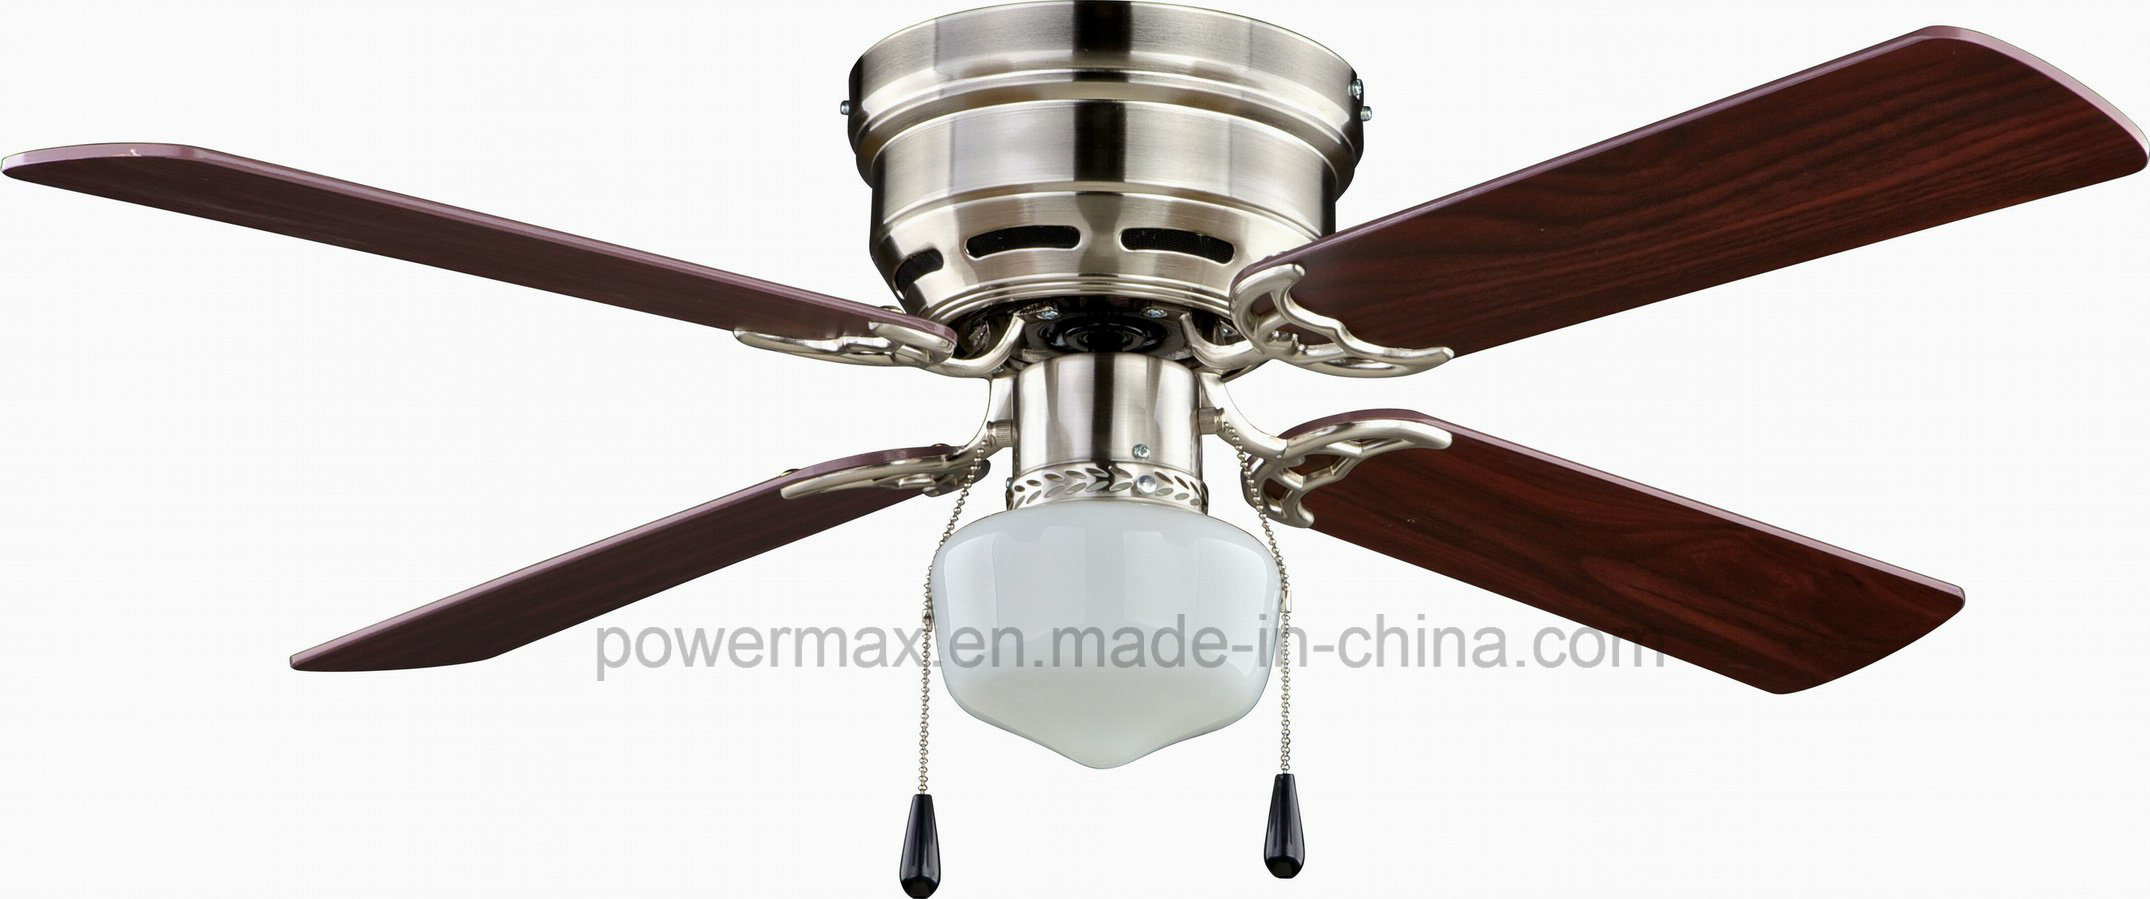 "42"" Ceiling Fan with Lighting pictures & photos"